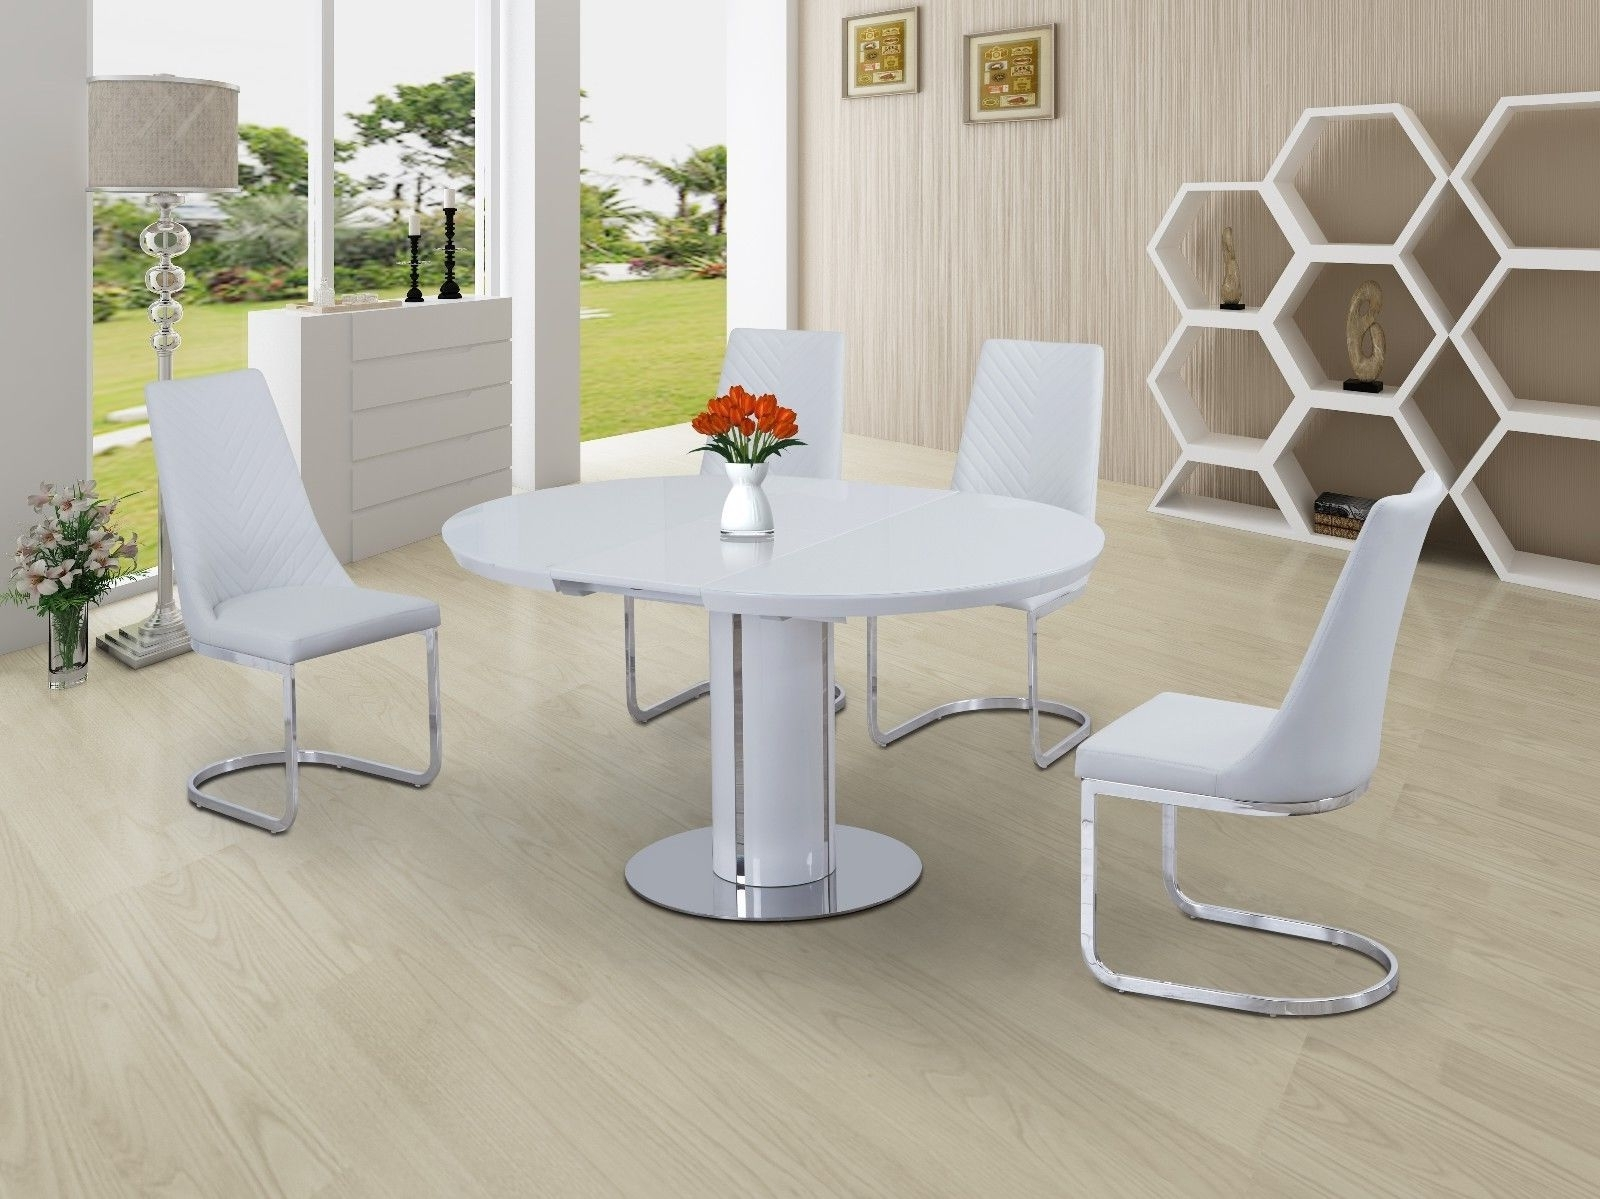 Round White High Gloss Dining Table Extendable With Chairs Option Throughout Well Liked Round White Extendable Dining Tables (View 19 of 25)